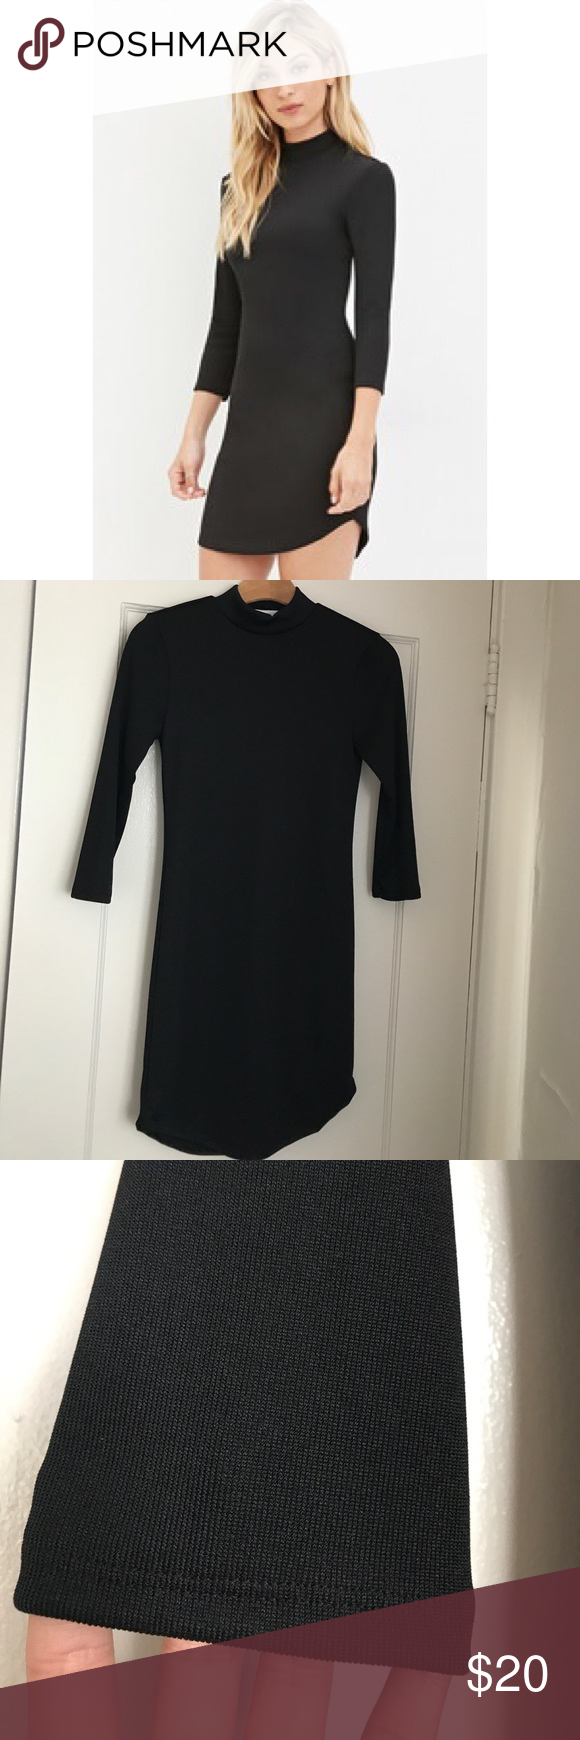 Bodycon dress material as seen on tv